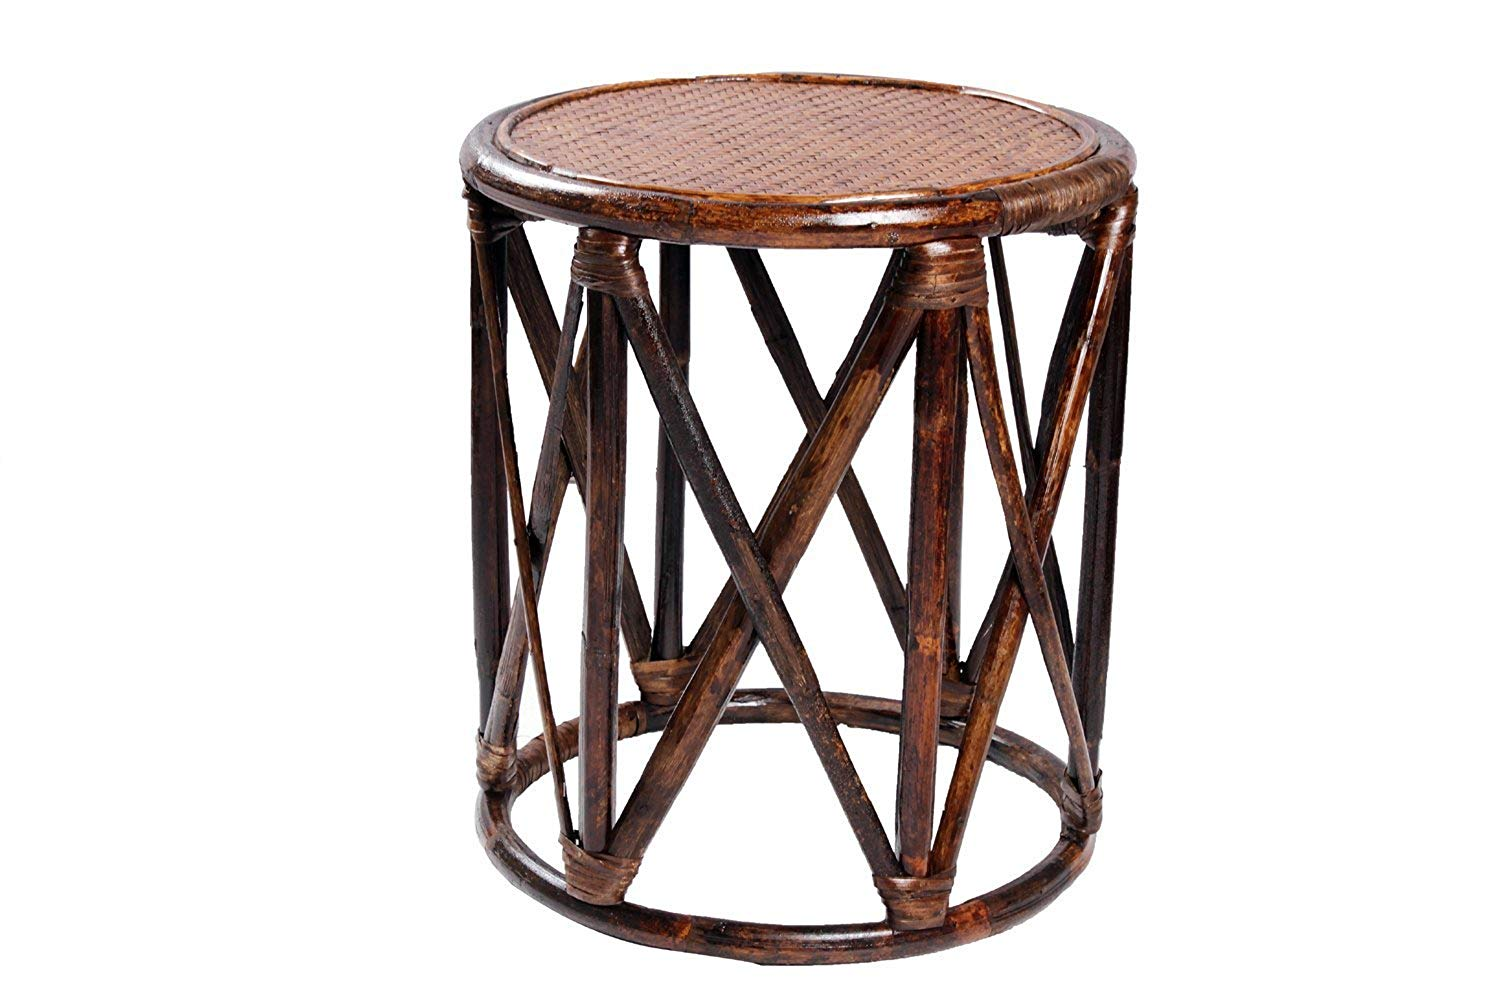 IRA Rattan and Wicker Round pouffe/Stool (Mudah) - IRA Furniture